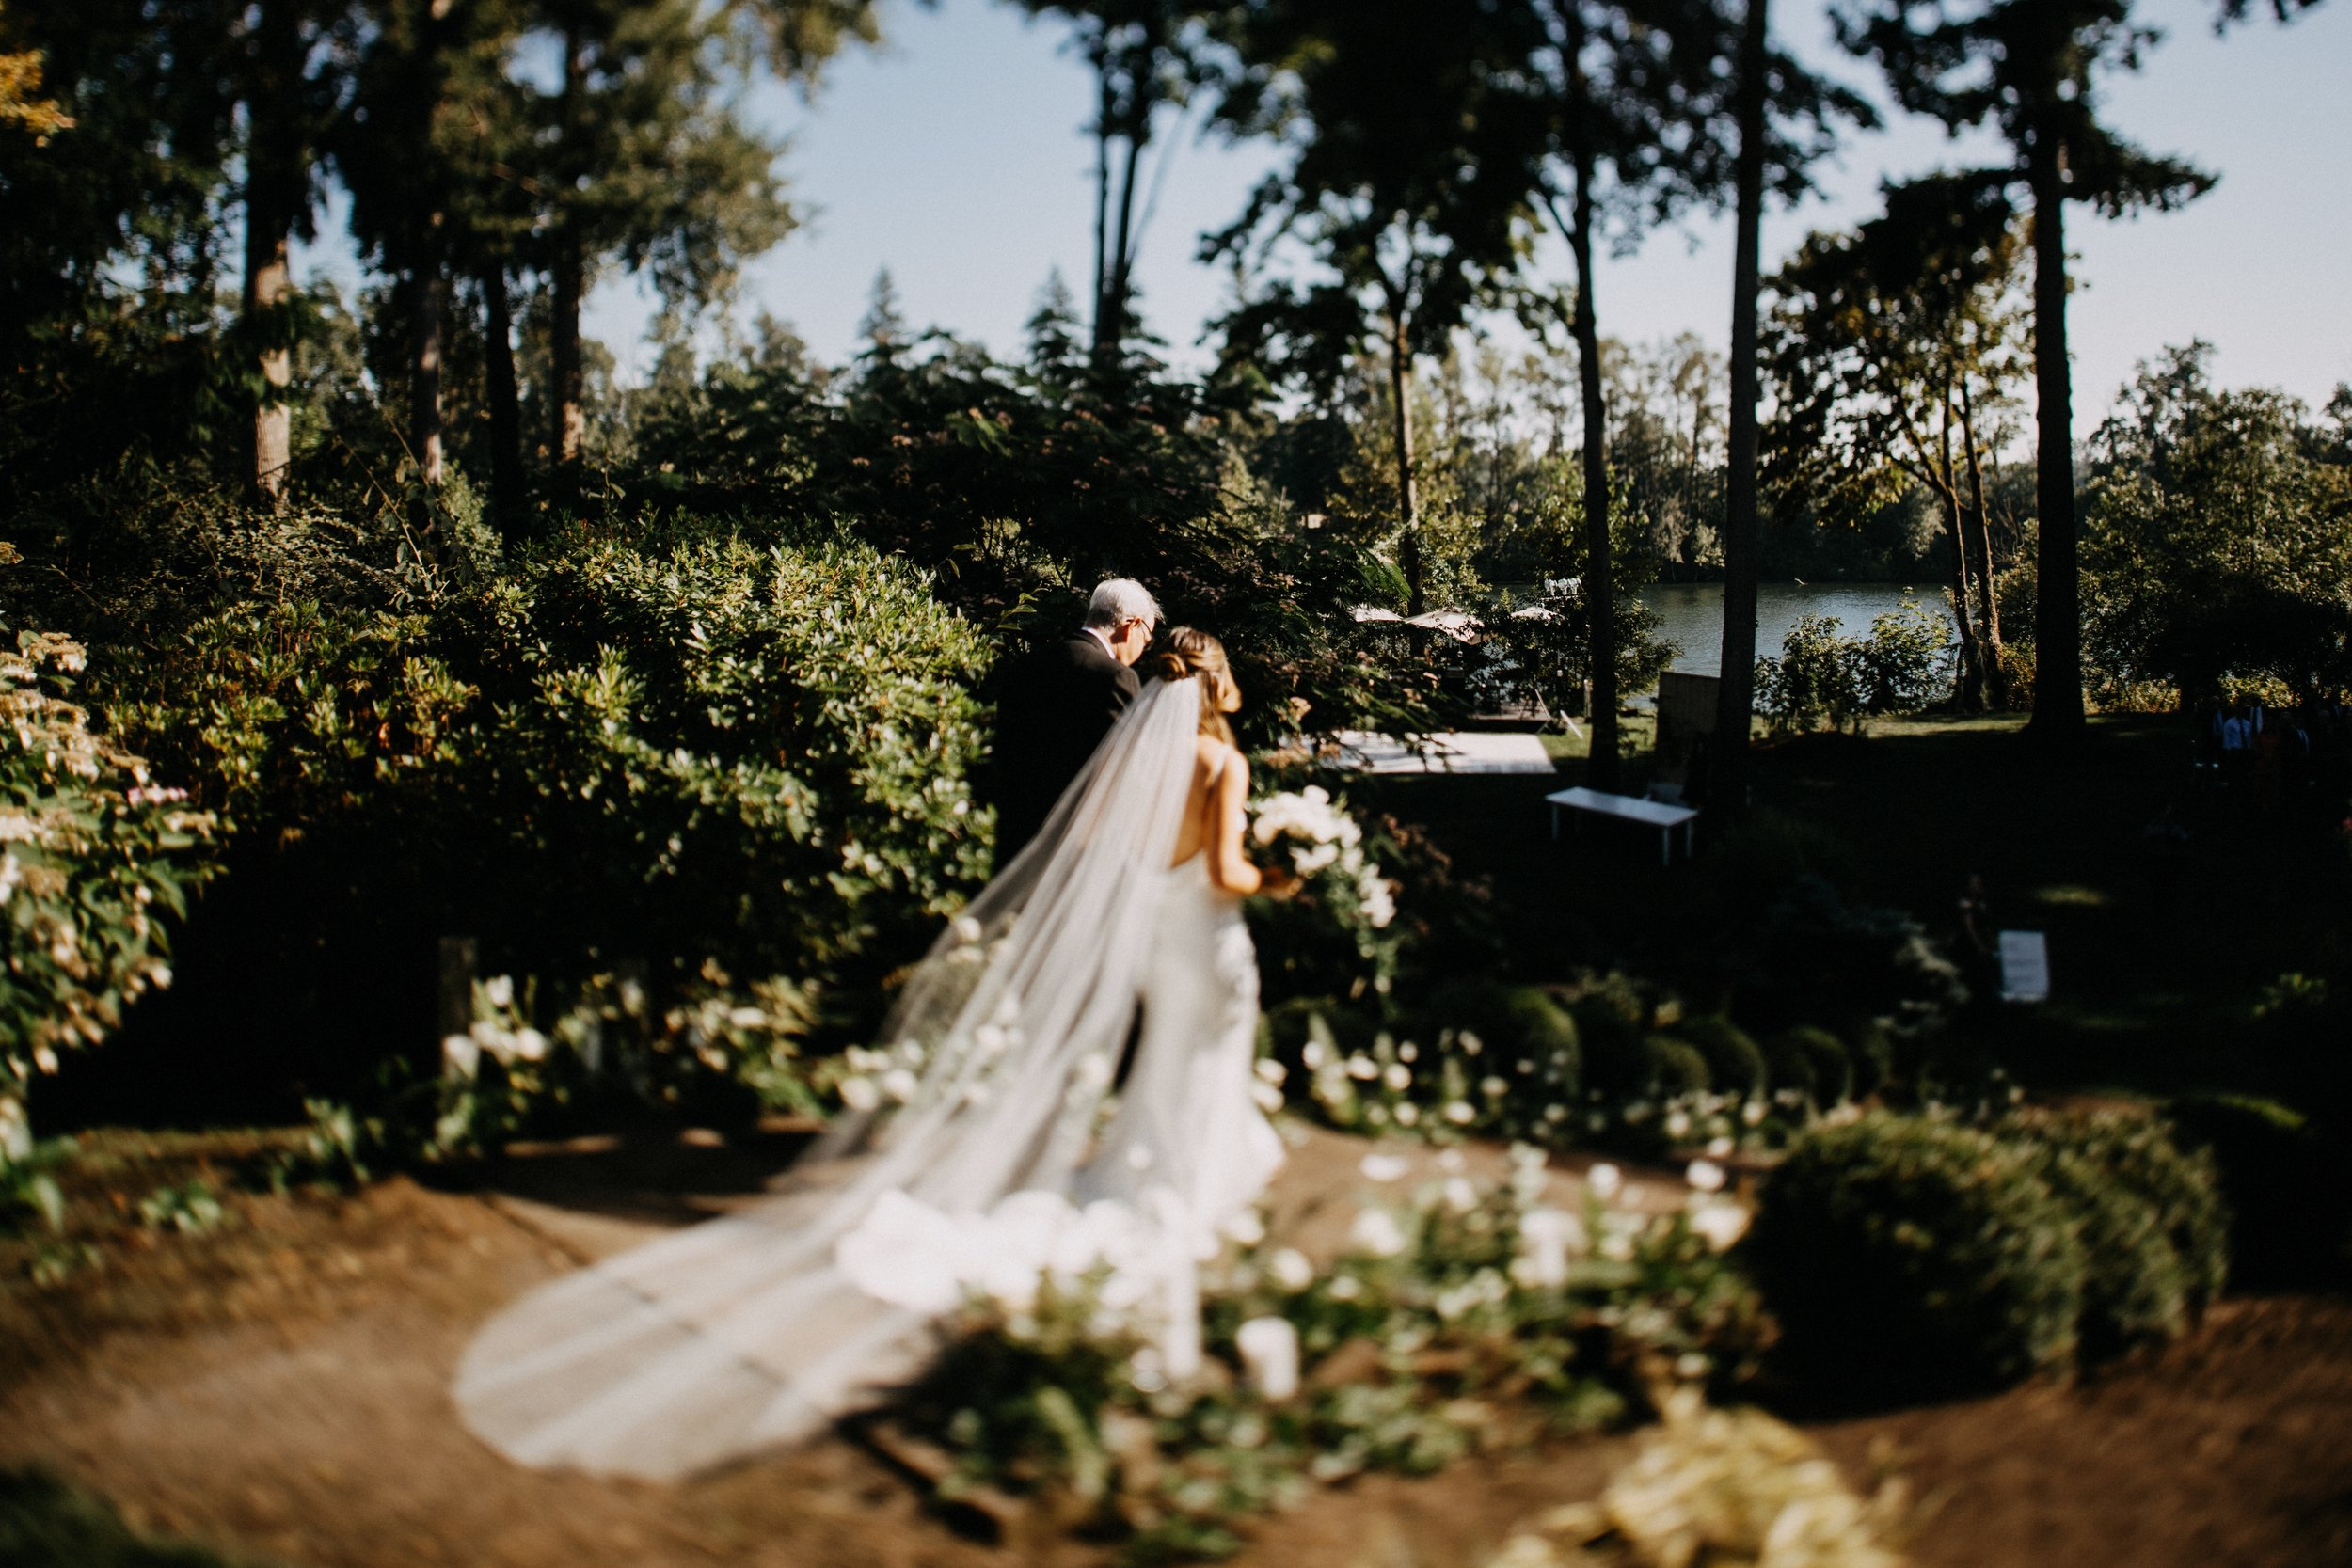 Bridalbliss.com | Portland Seattle Bend Wedding | Oregon Washington Event Planning and Design | Dylan Howell Photography